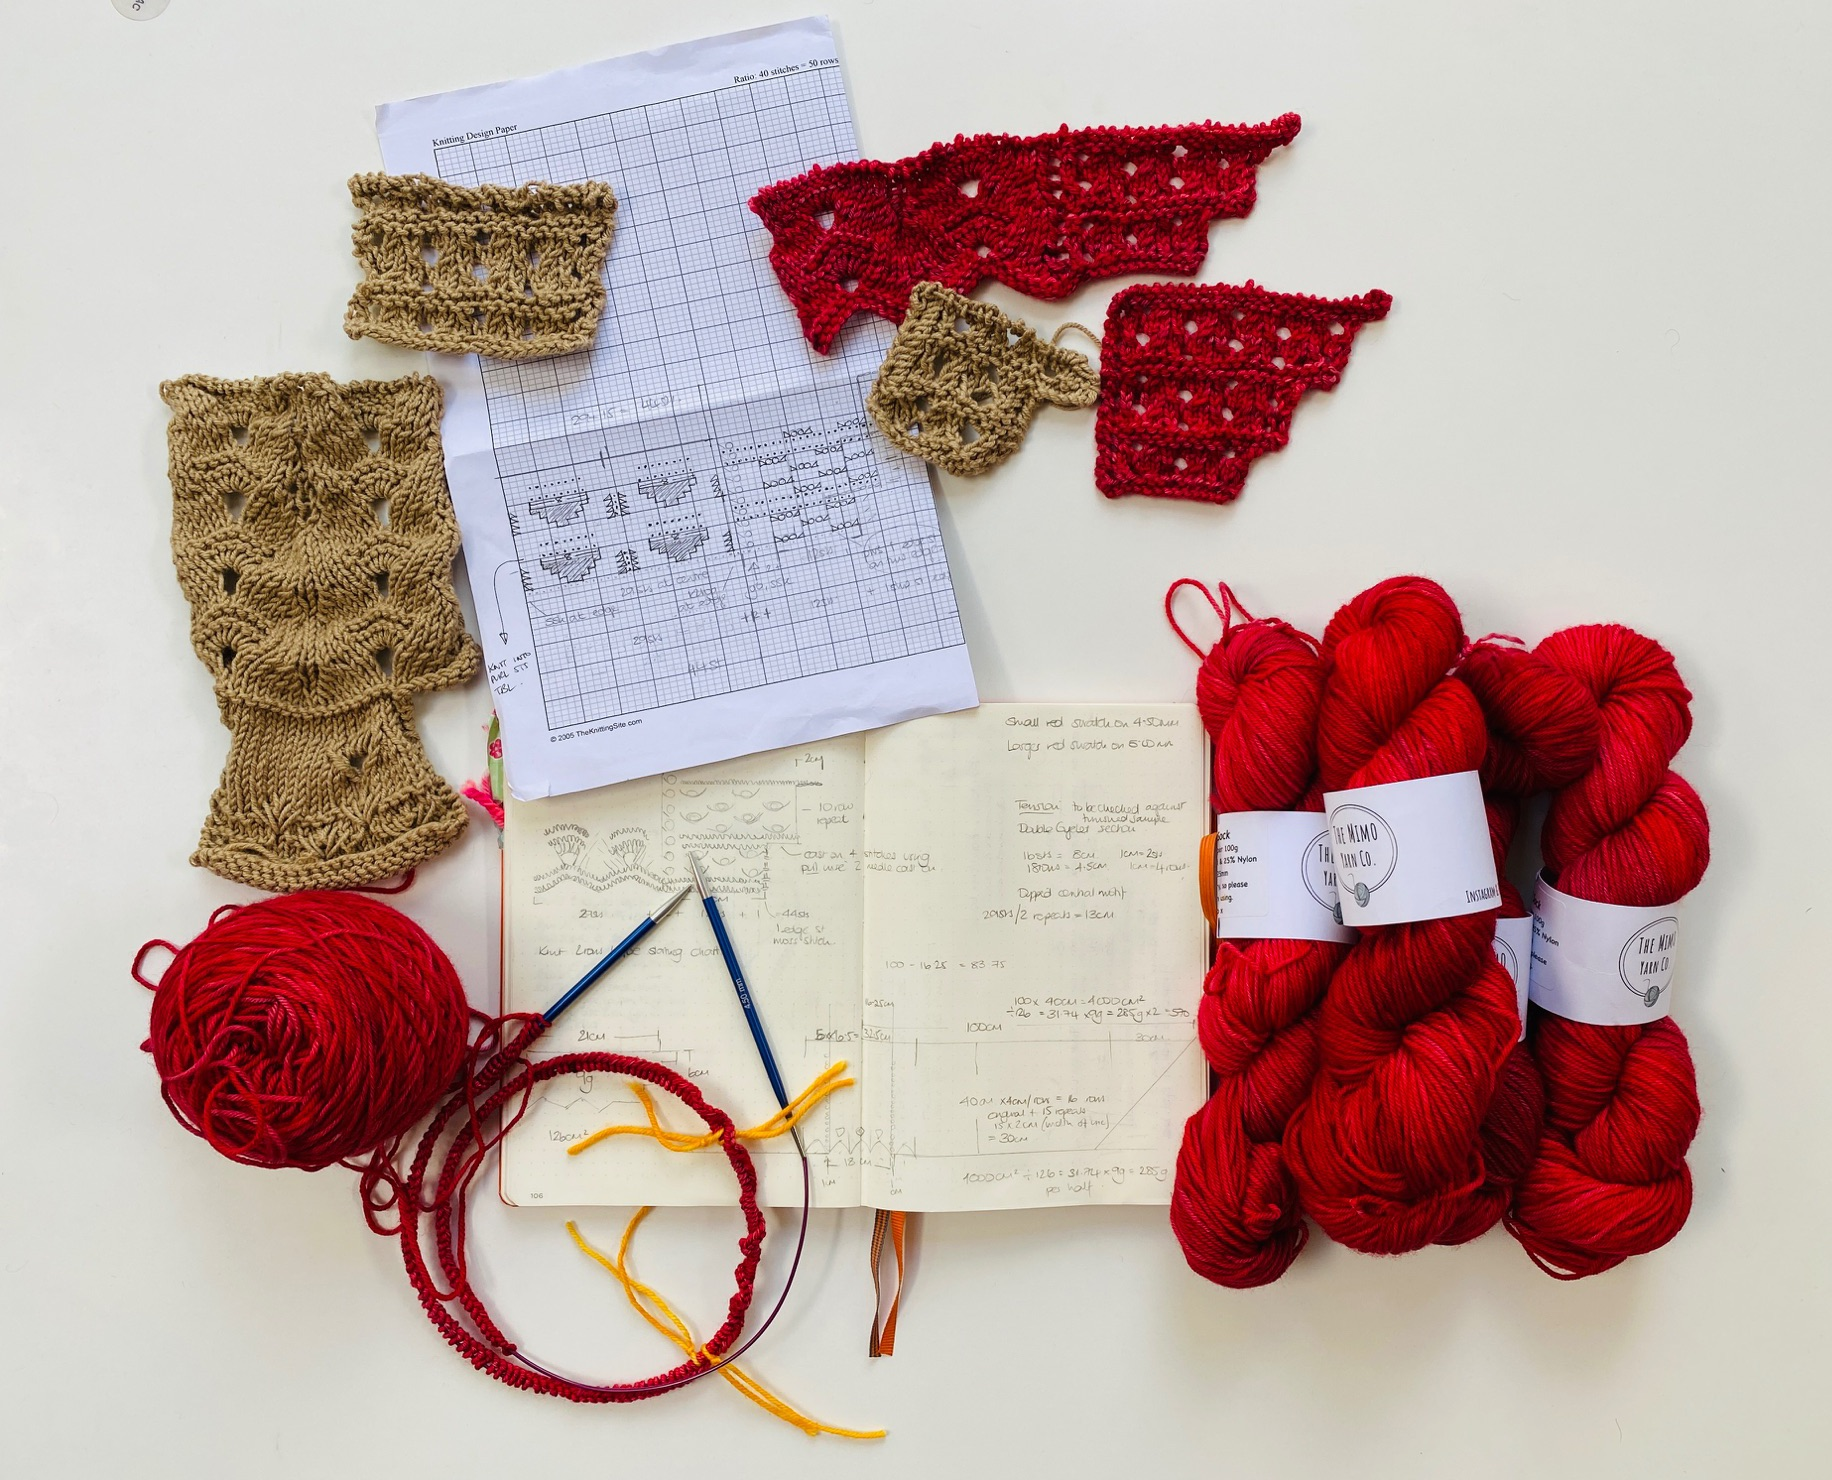 selcetion of knitted samples  and skeins of rad yarn lay beside an open skecthbook and graph paper with a circular knitting needle on a white bacgrounf